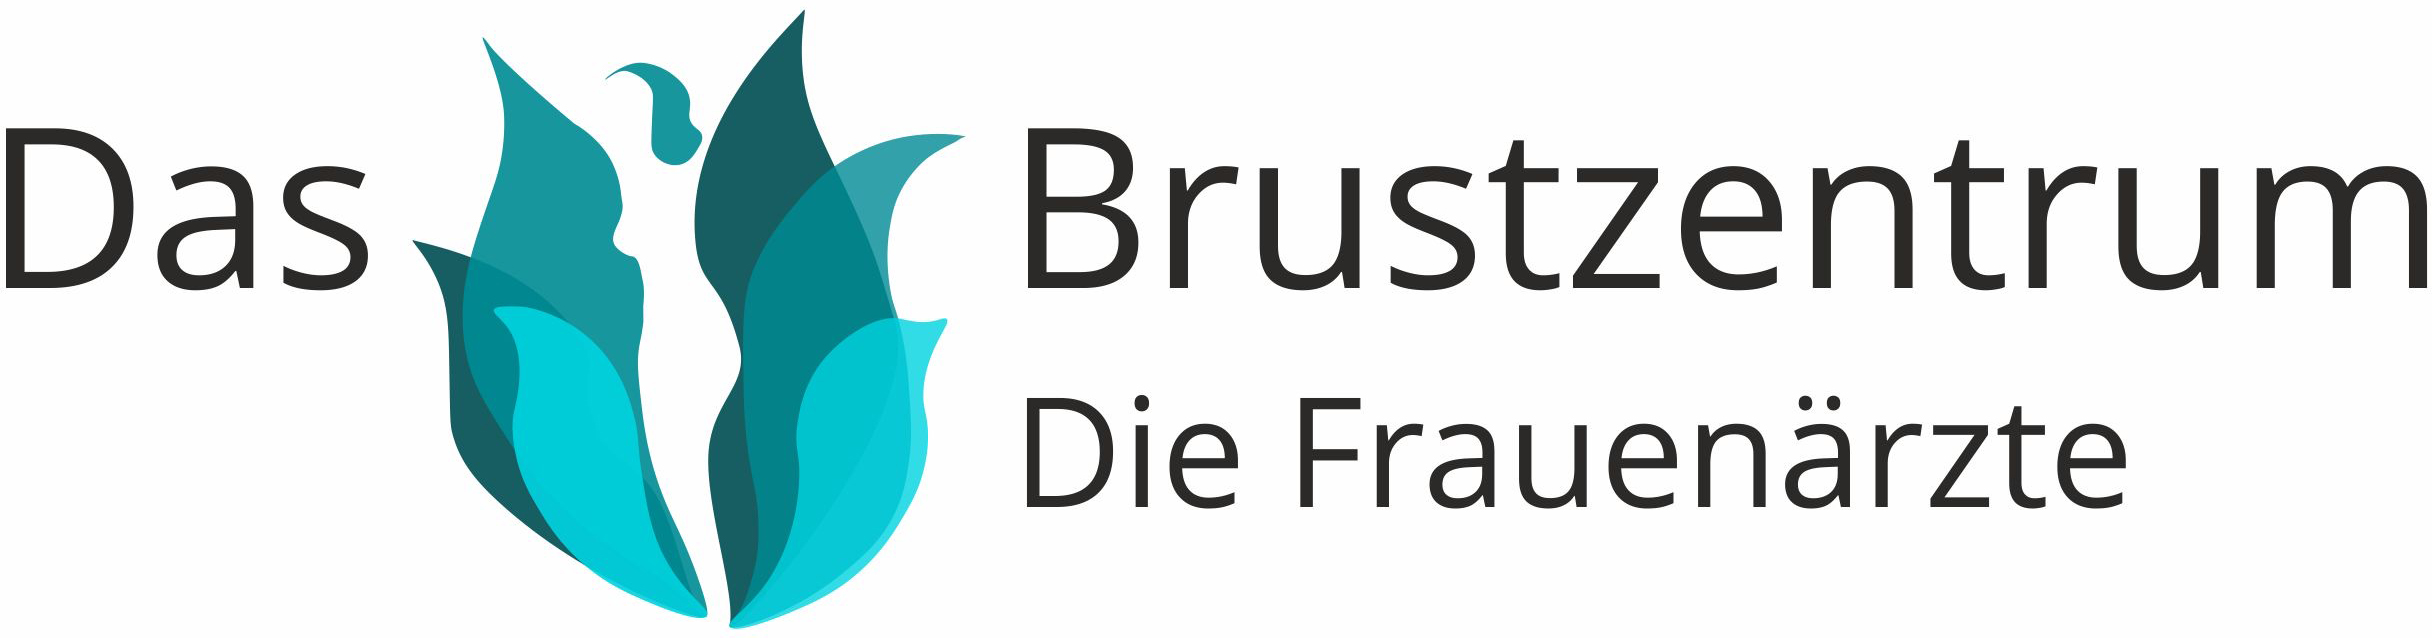 Das Brustzentrum